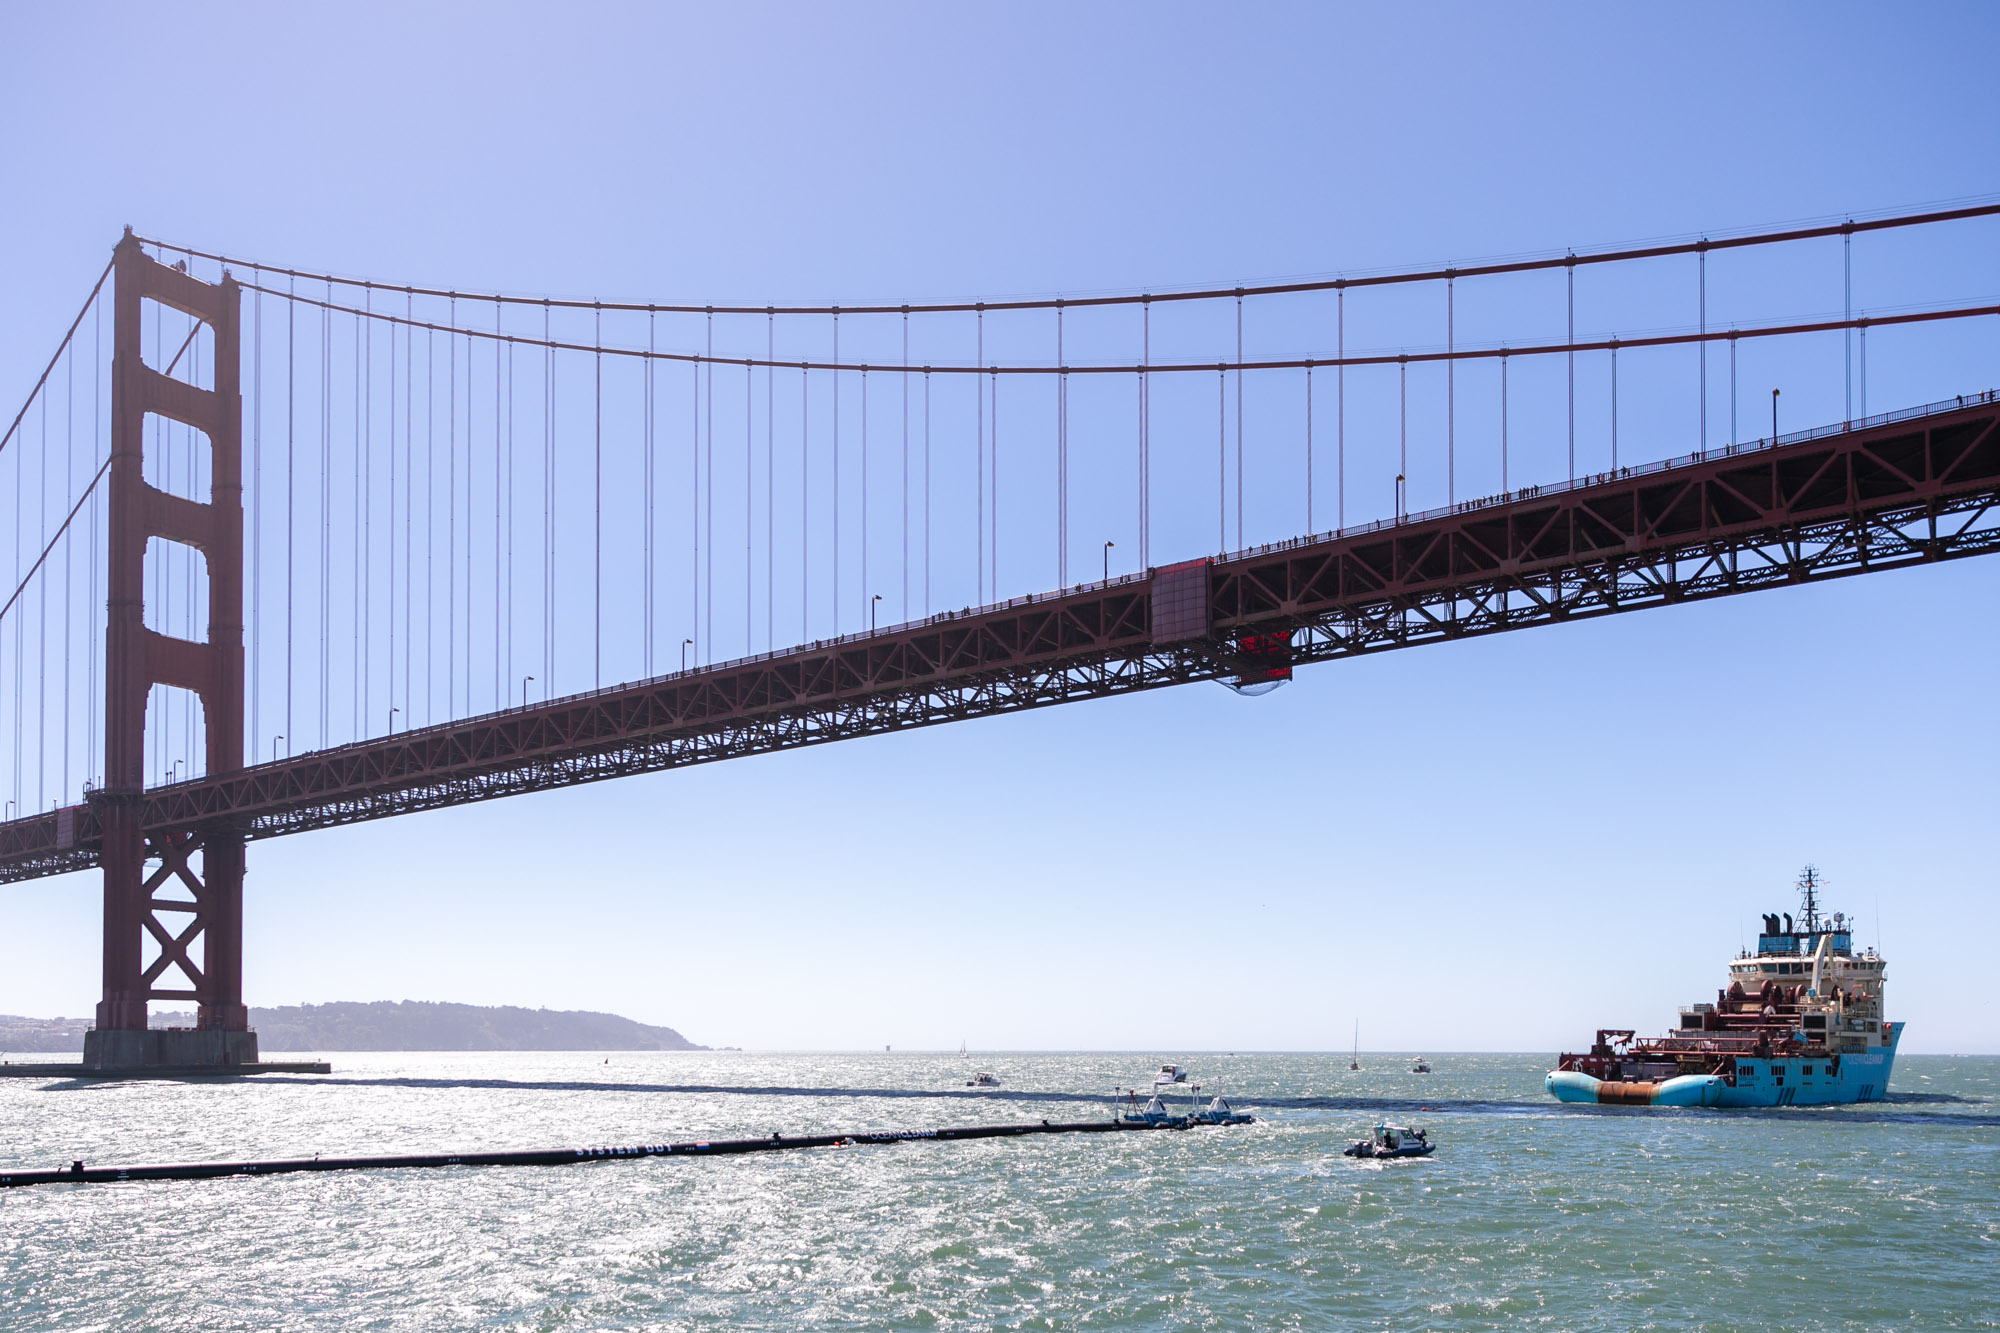 SAN FRANCISCO, CALIFORNIA, September 8, 2018 – The Ocean Cleanup Soon to Begin Removing Plastic Pollution from the Great Pacific Garbage Patch - Photo: Pierre AUGIER for The OCEAN CLEANUP